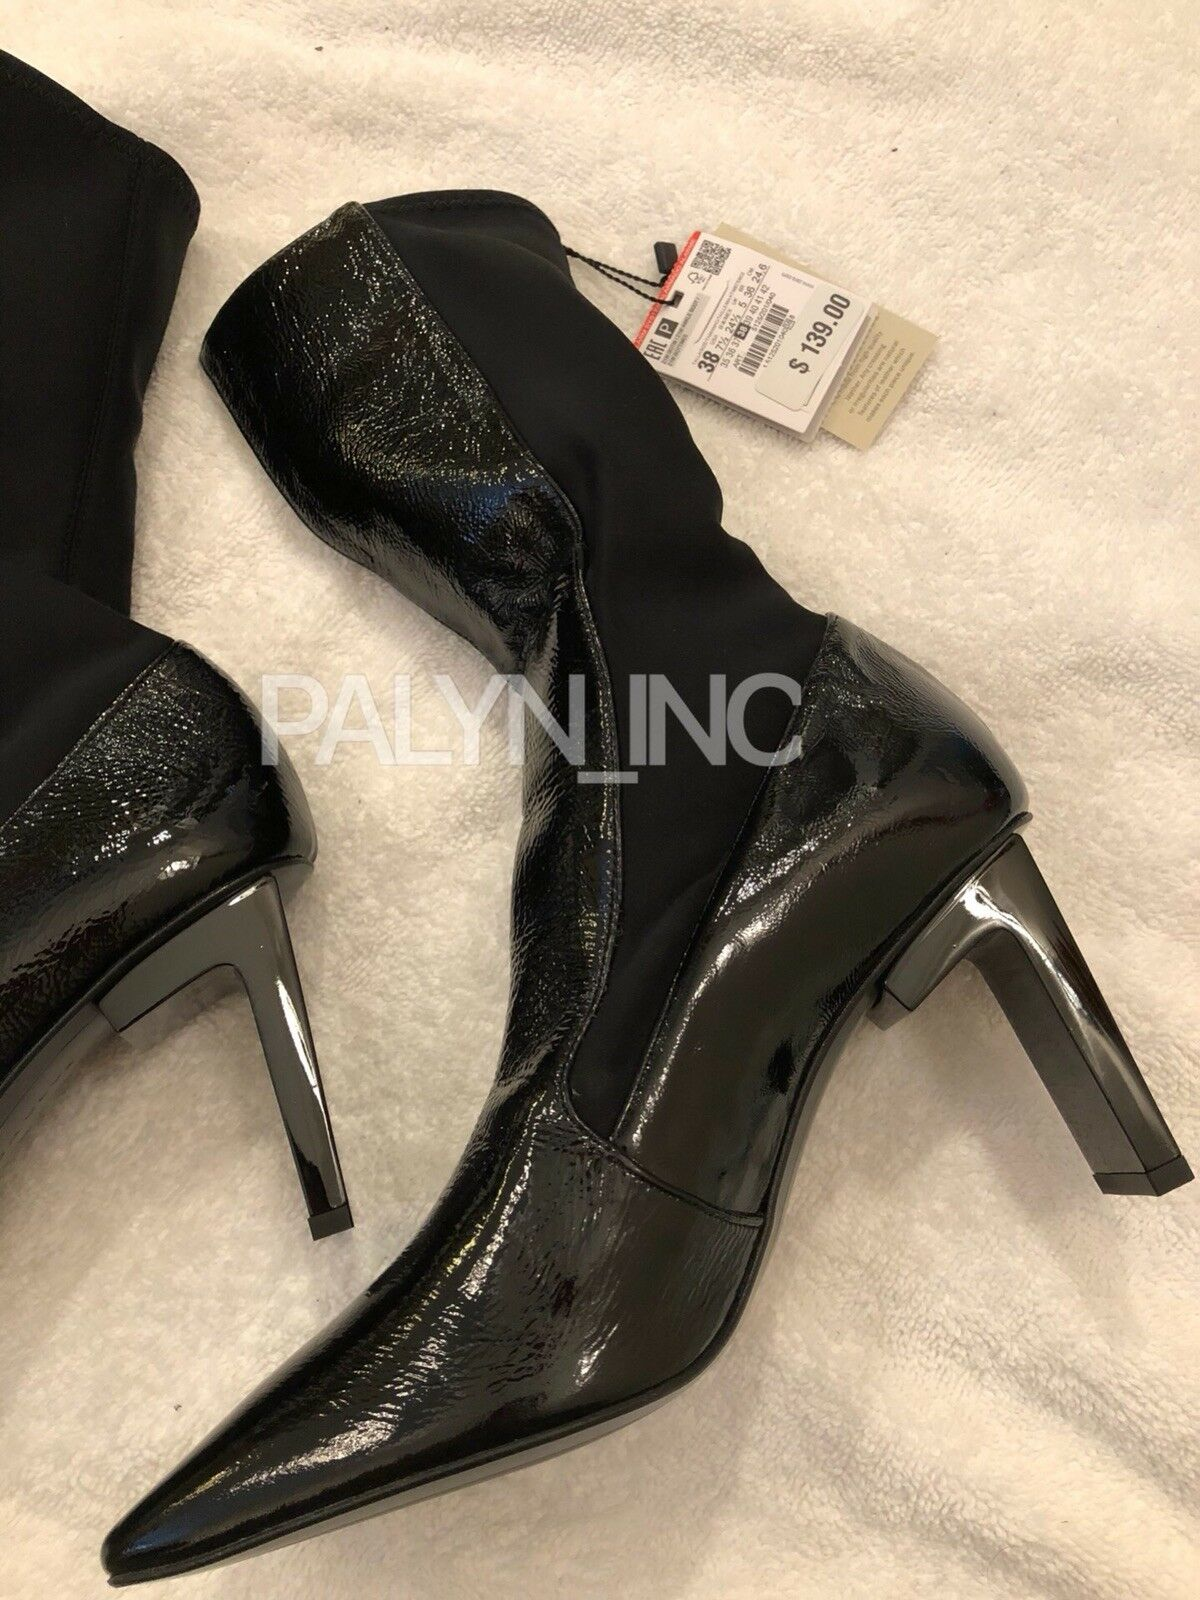 NWT ZARA SQUARE TOED HIGH HEEL LEATHER ANKLE BOOTS REF. 5125 201_EUR38 US7.5